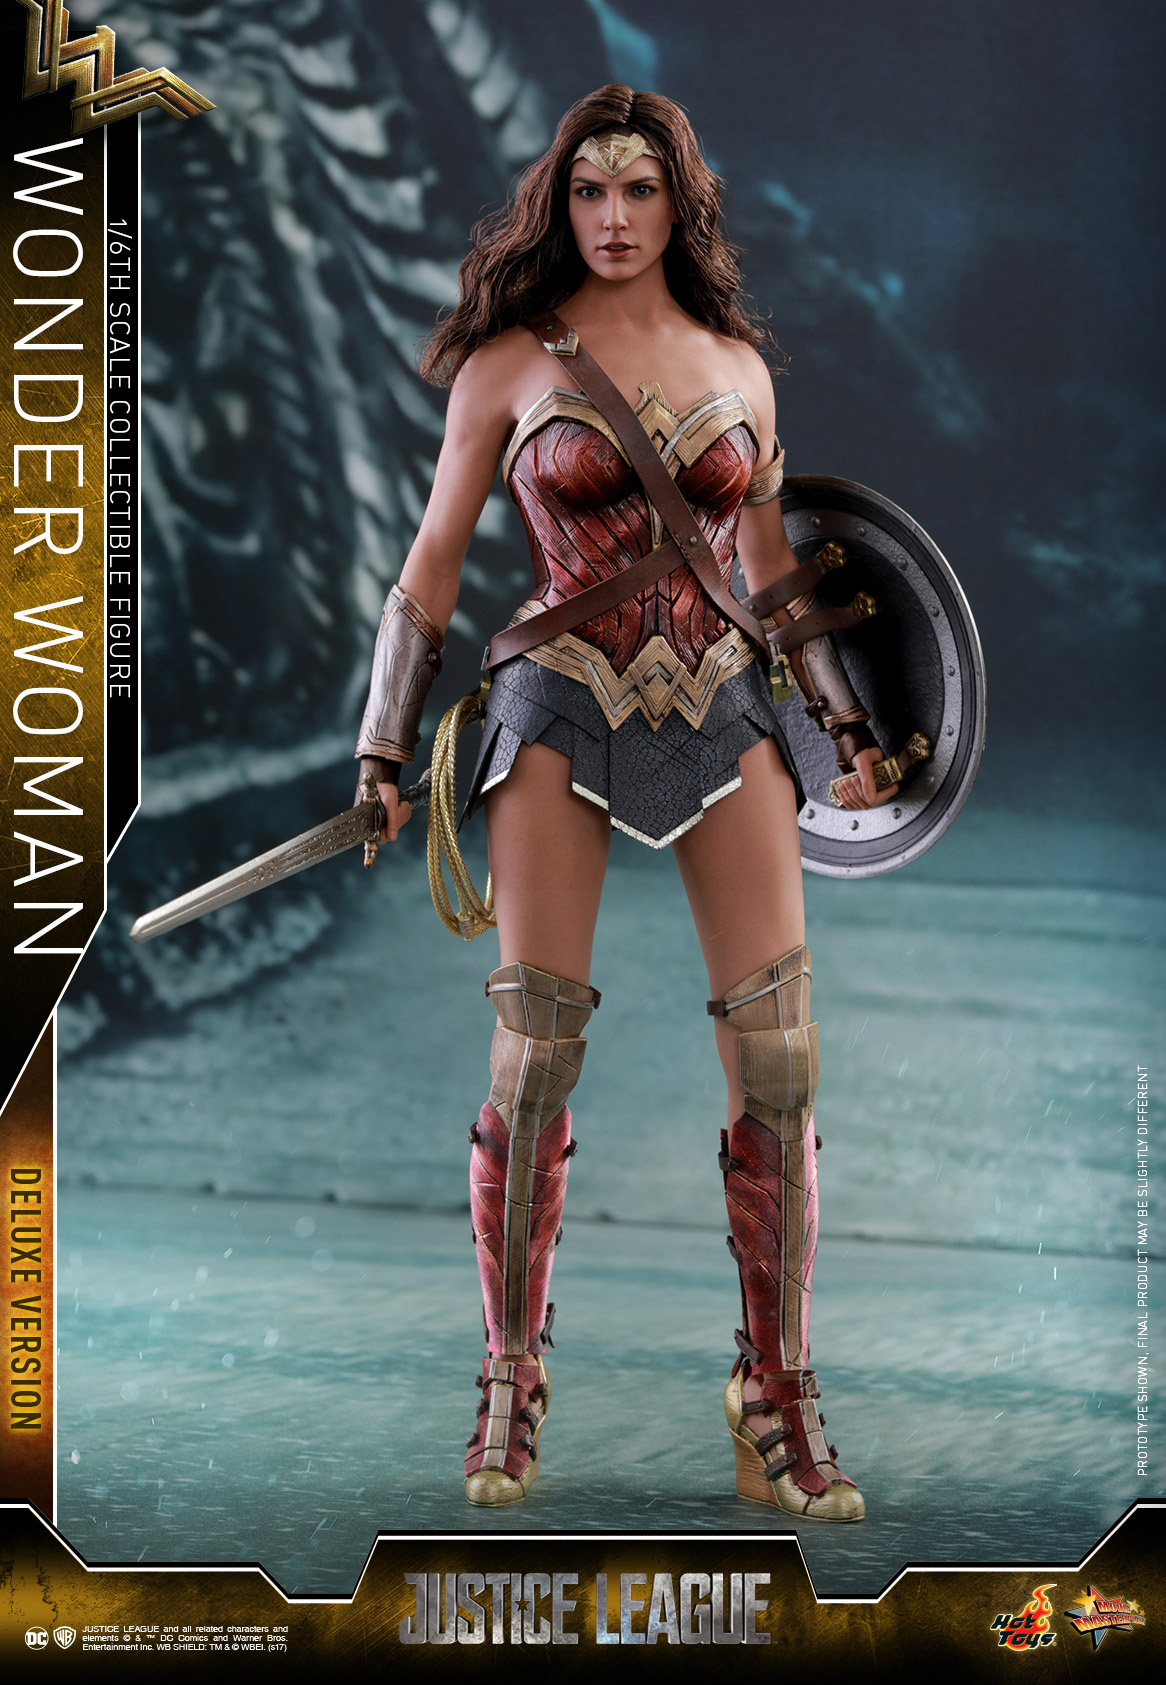 Hot-Toys-Justice-League-Wonder-Woman-collectible-figure-Deluxe_PR-1.jpg